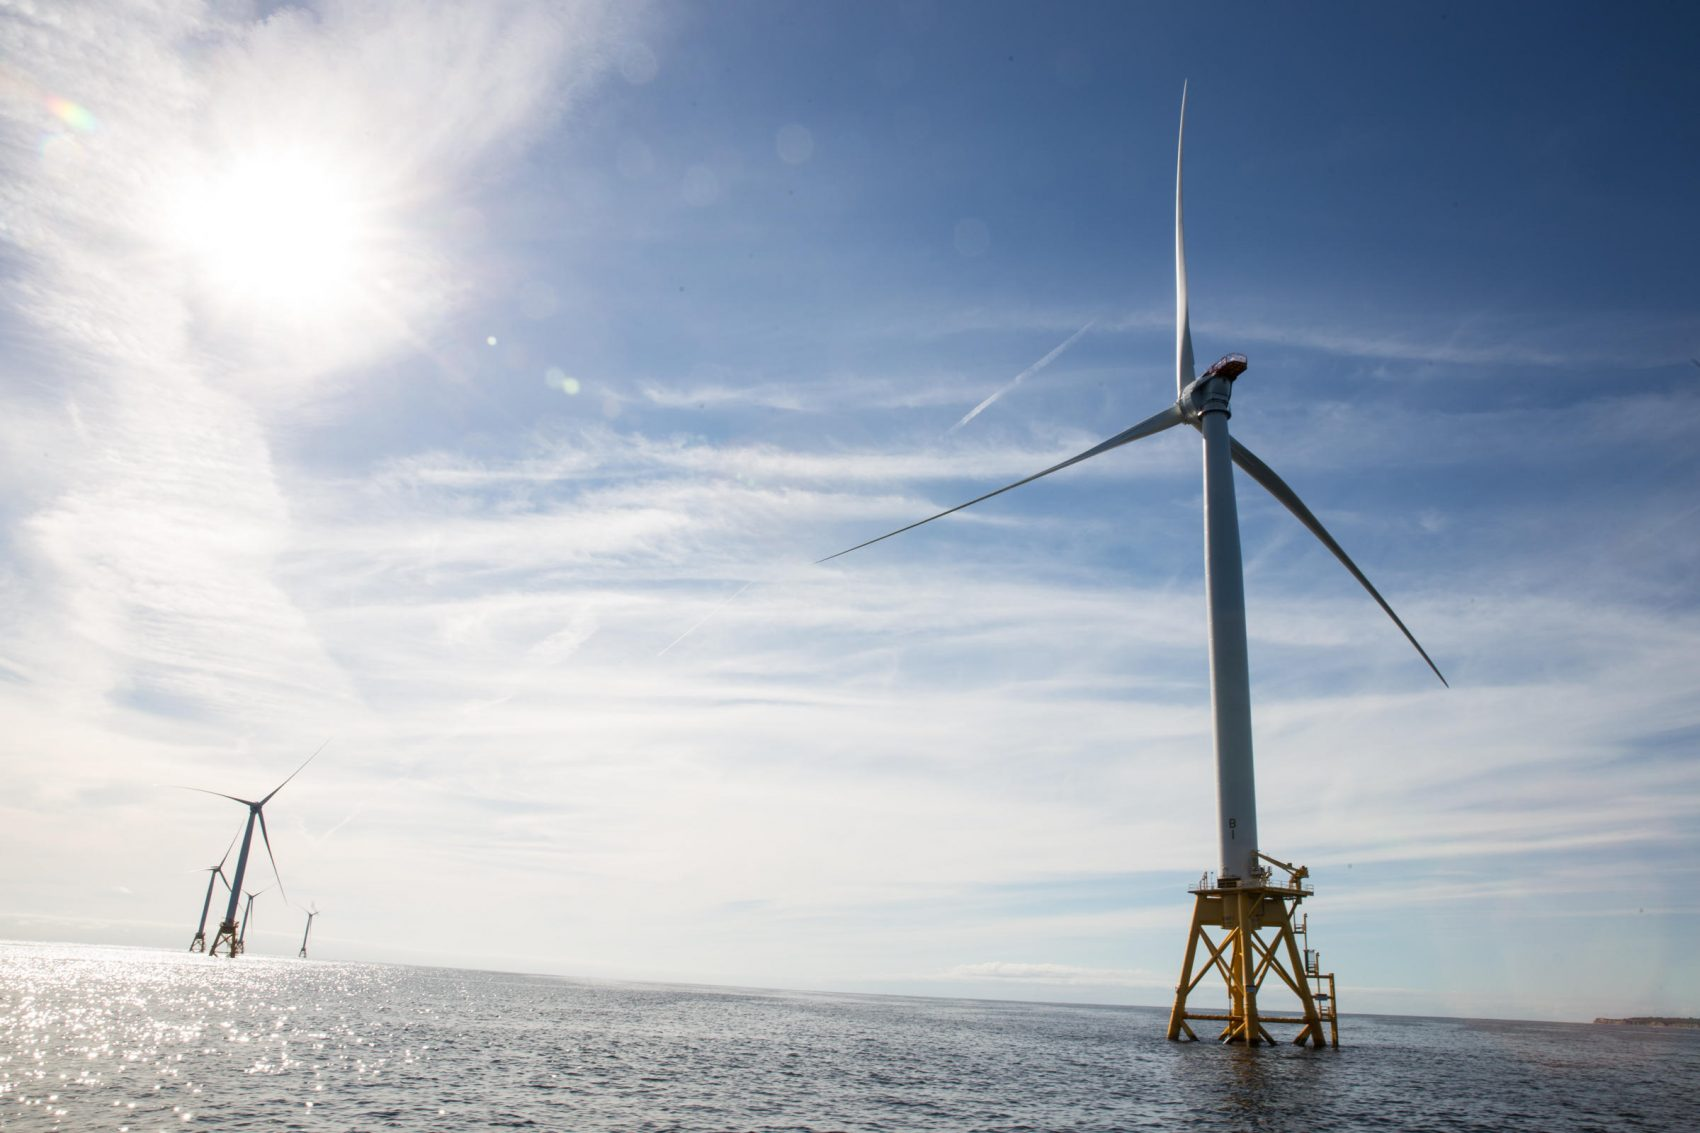 The Block Island wind farm has been up and running since late 2016. (Ryan Caron King/New England News Collaborative)